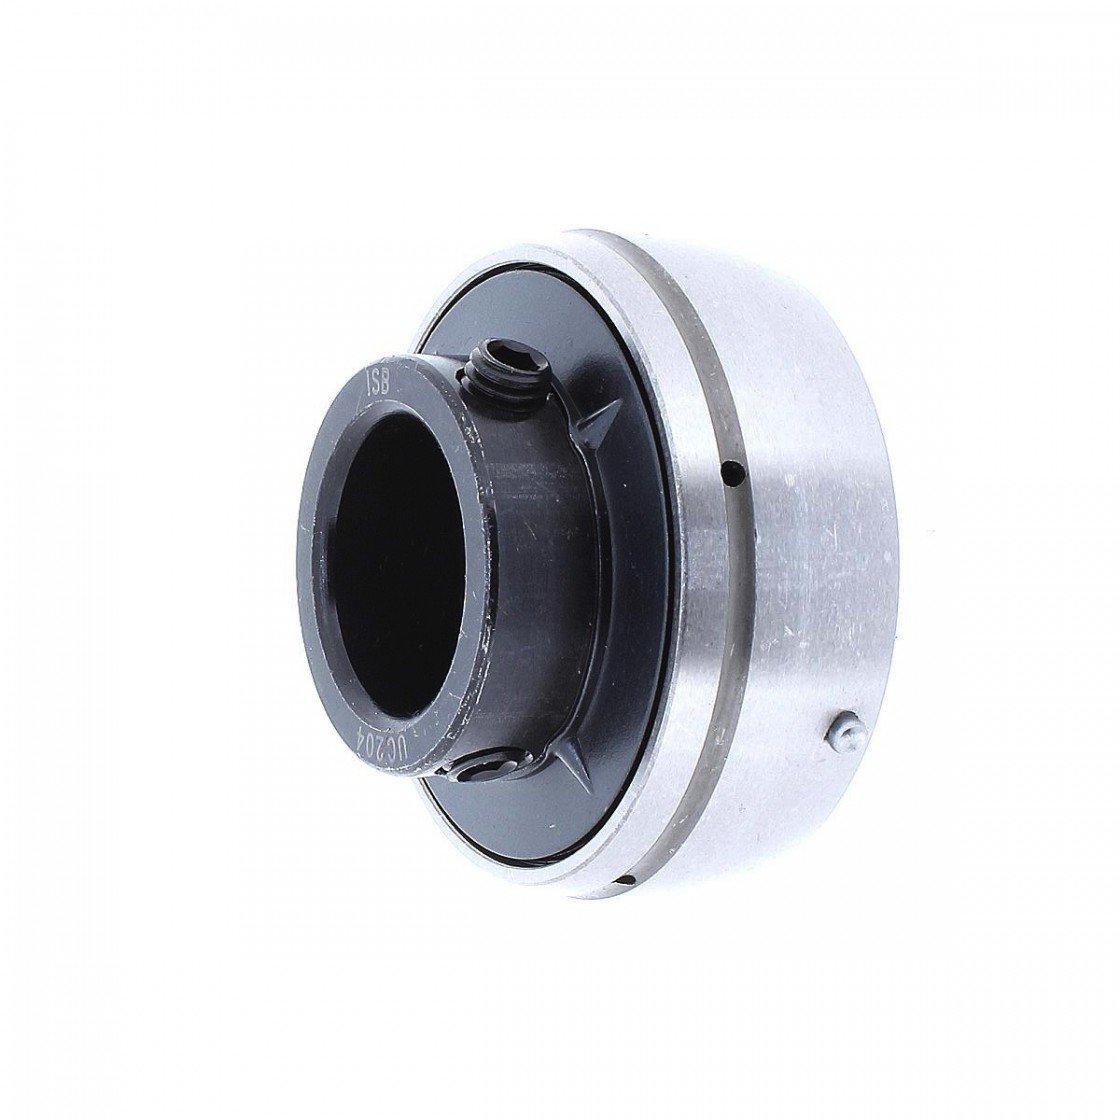 Stainless steel hybrid ceramic bearing 6803-2rs 17*26*5mm